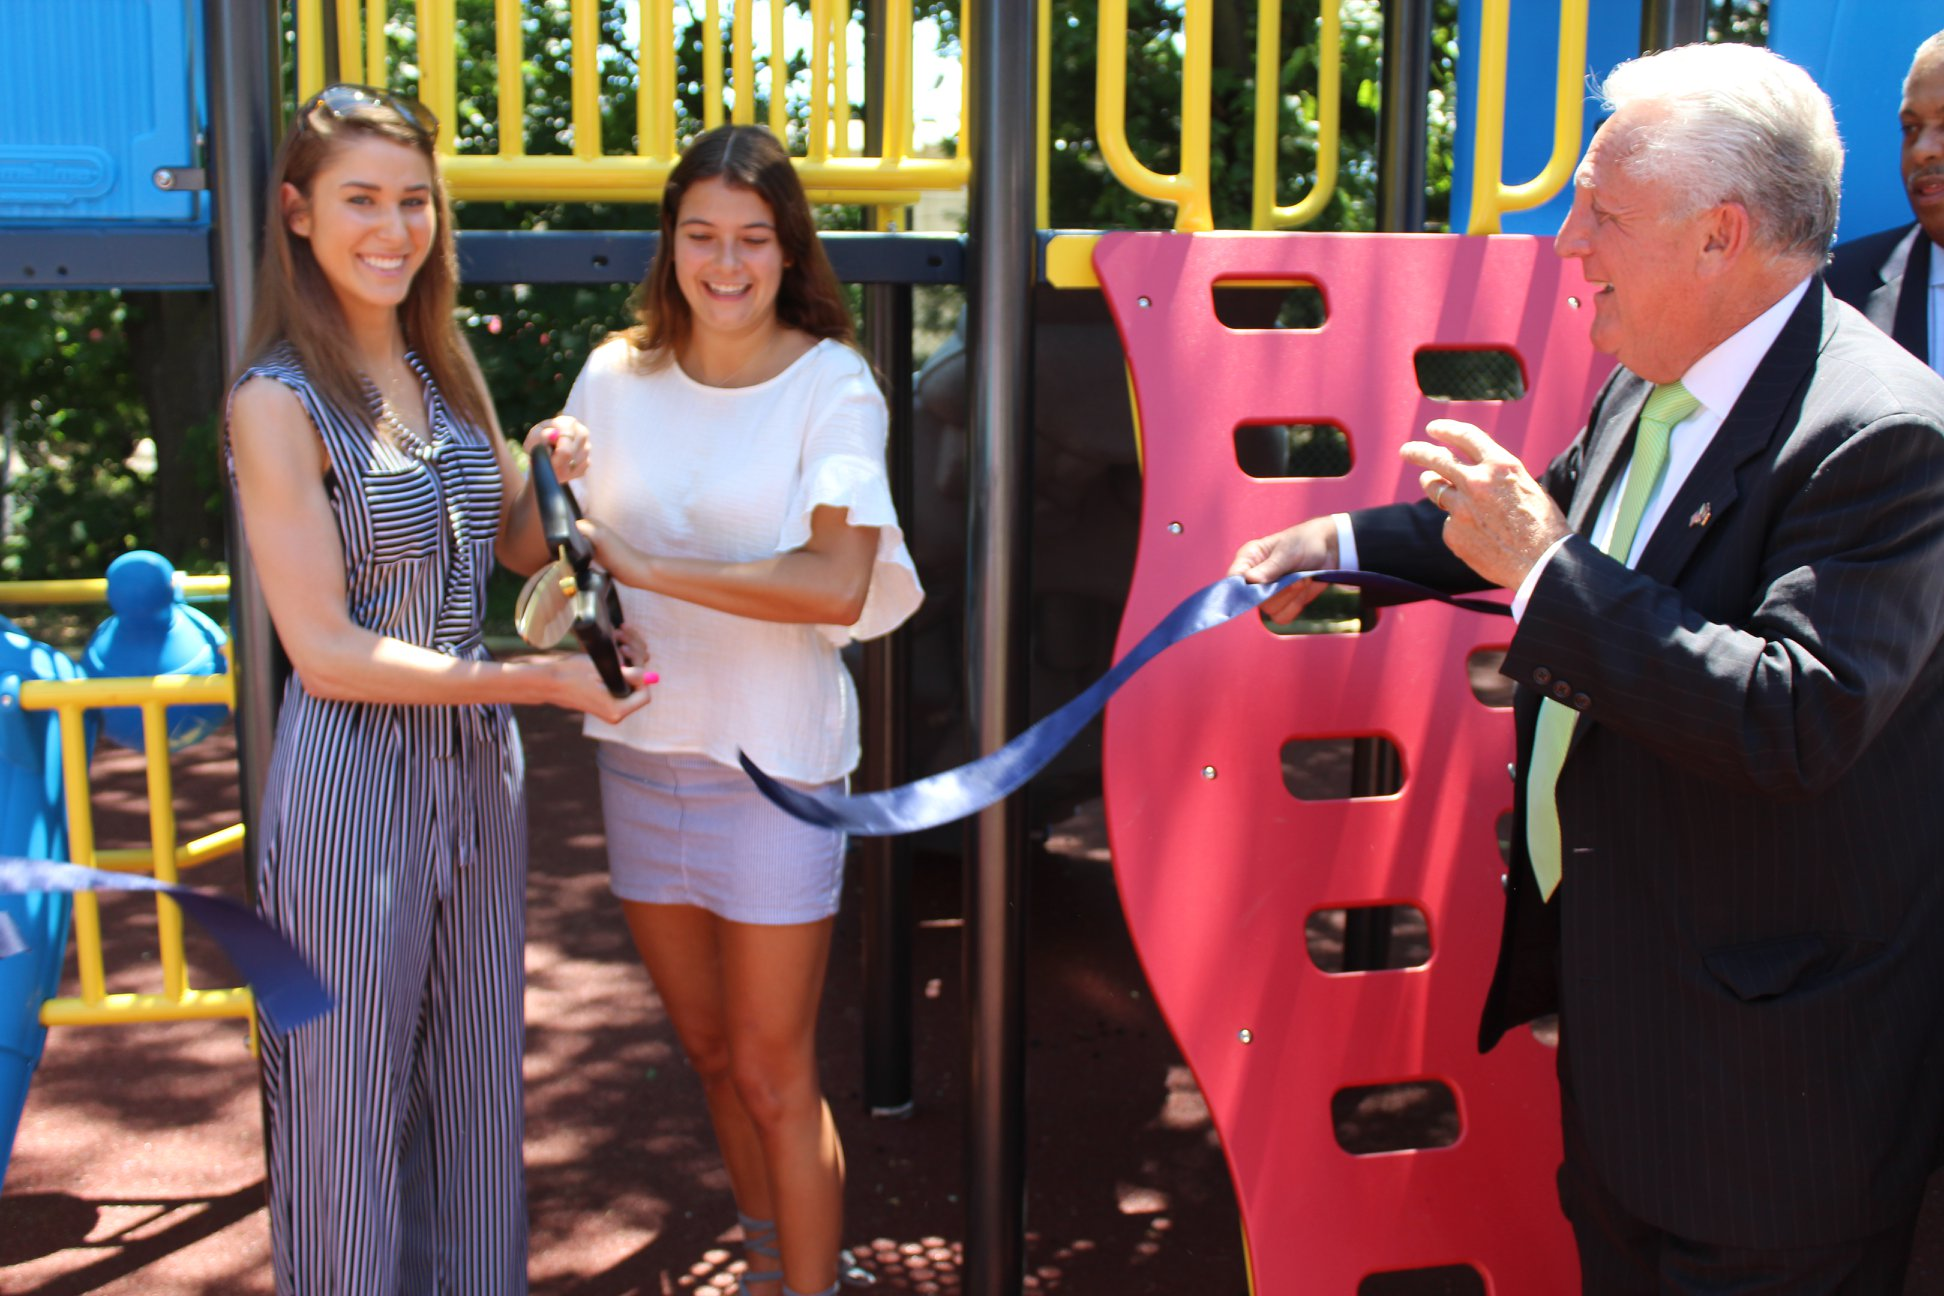 Former New Canaan High School students who helped raise the funds necessary to build the new playground, Becca Walshin now at Penn State and Jackie Newlin, now at the University of San Diego, cut the ribbon with Mayor Harry Rilling assisting.